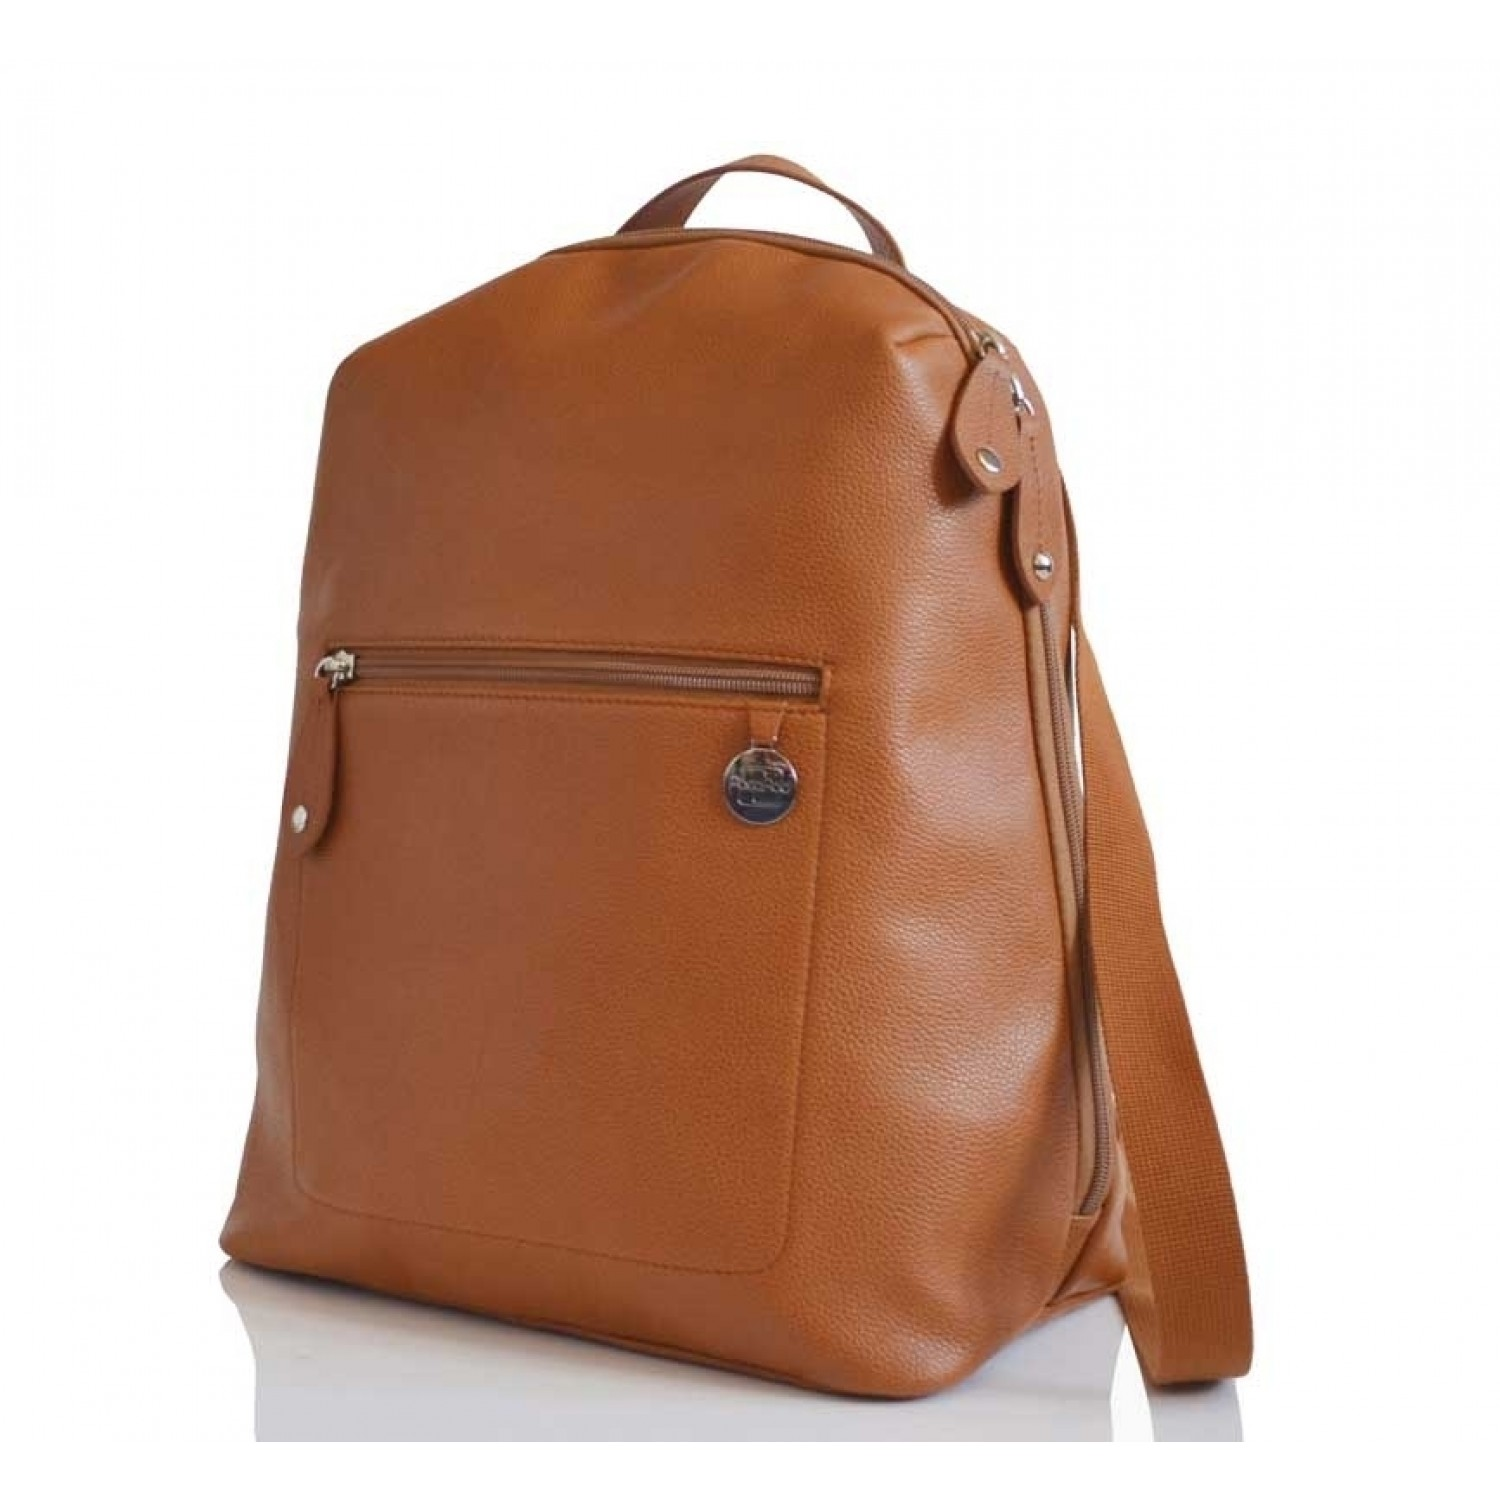 PacaPod Hartland Tan Leather Backpack & Eco Changing Bag